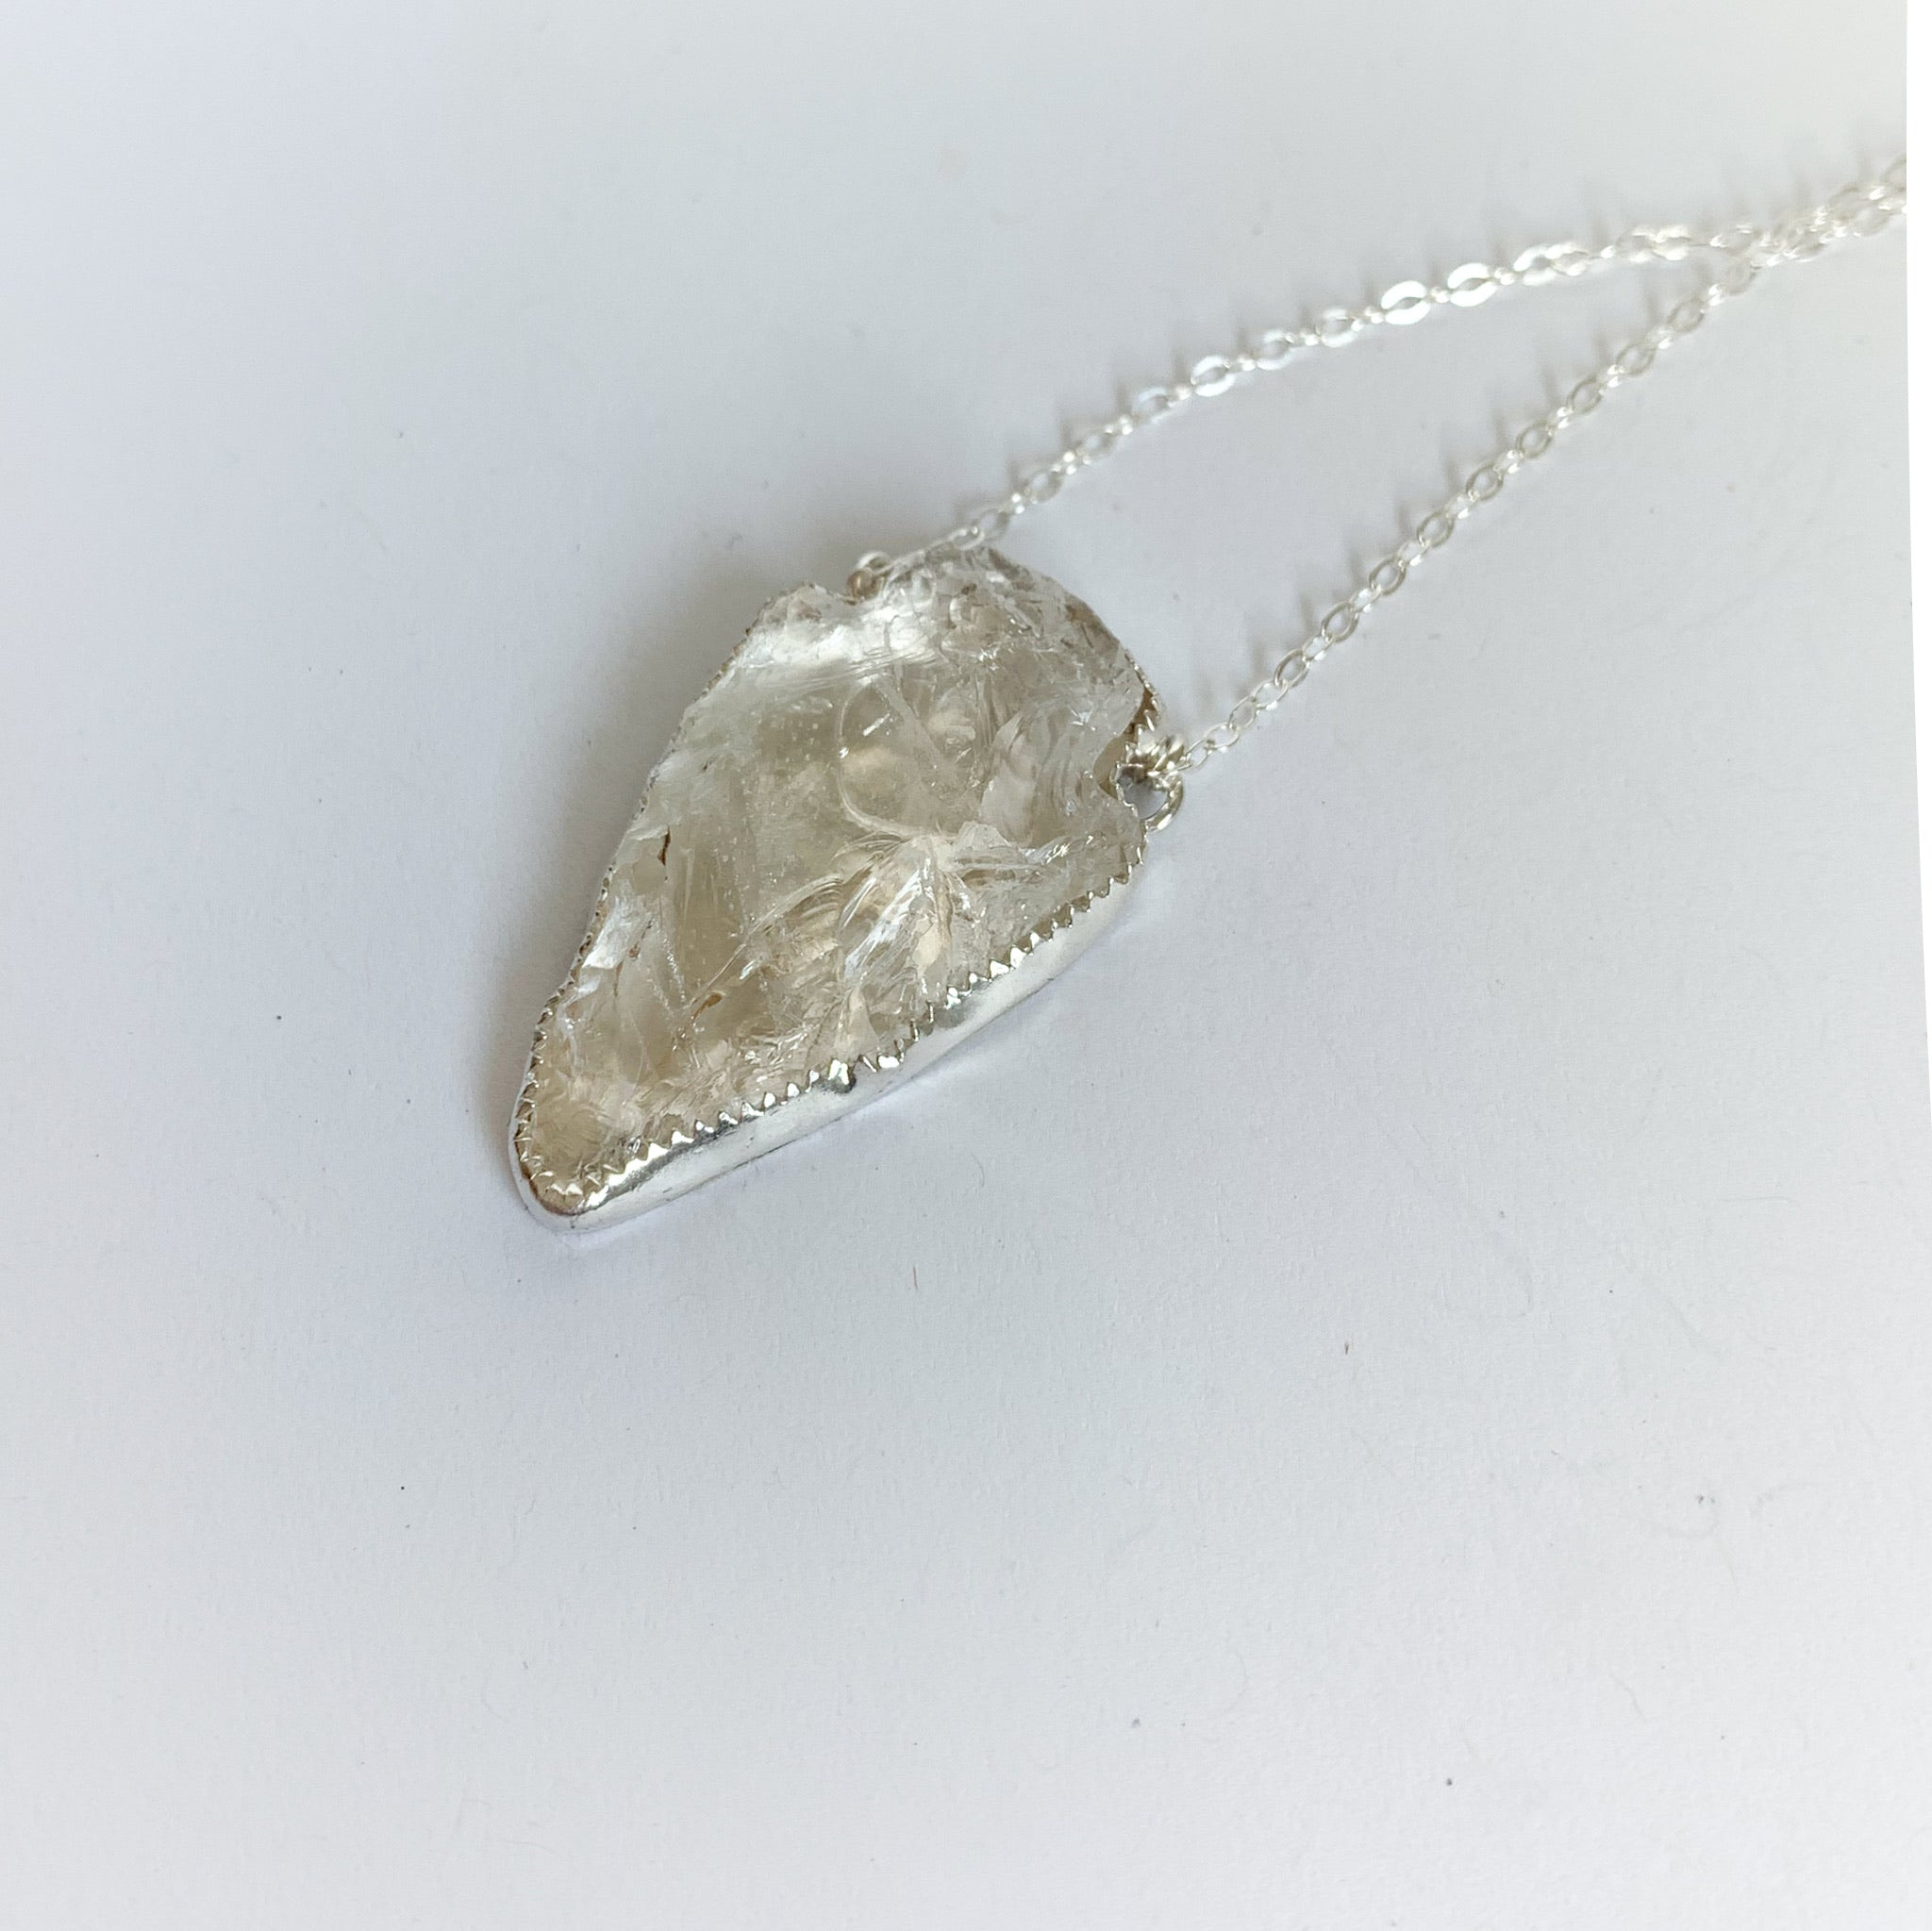 Quartz crystal arrowhead necklace